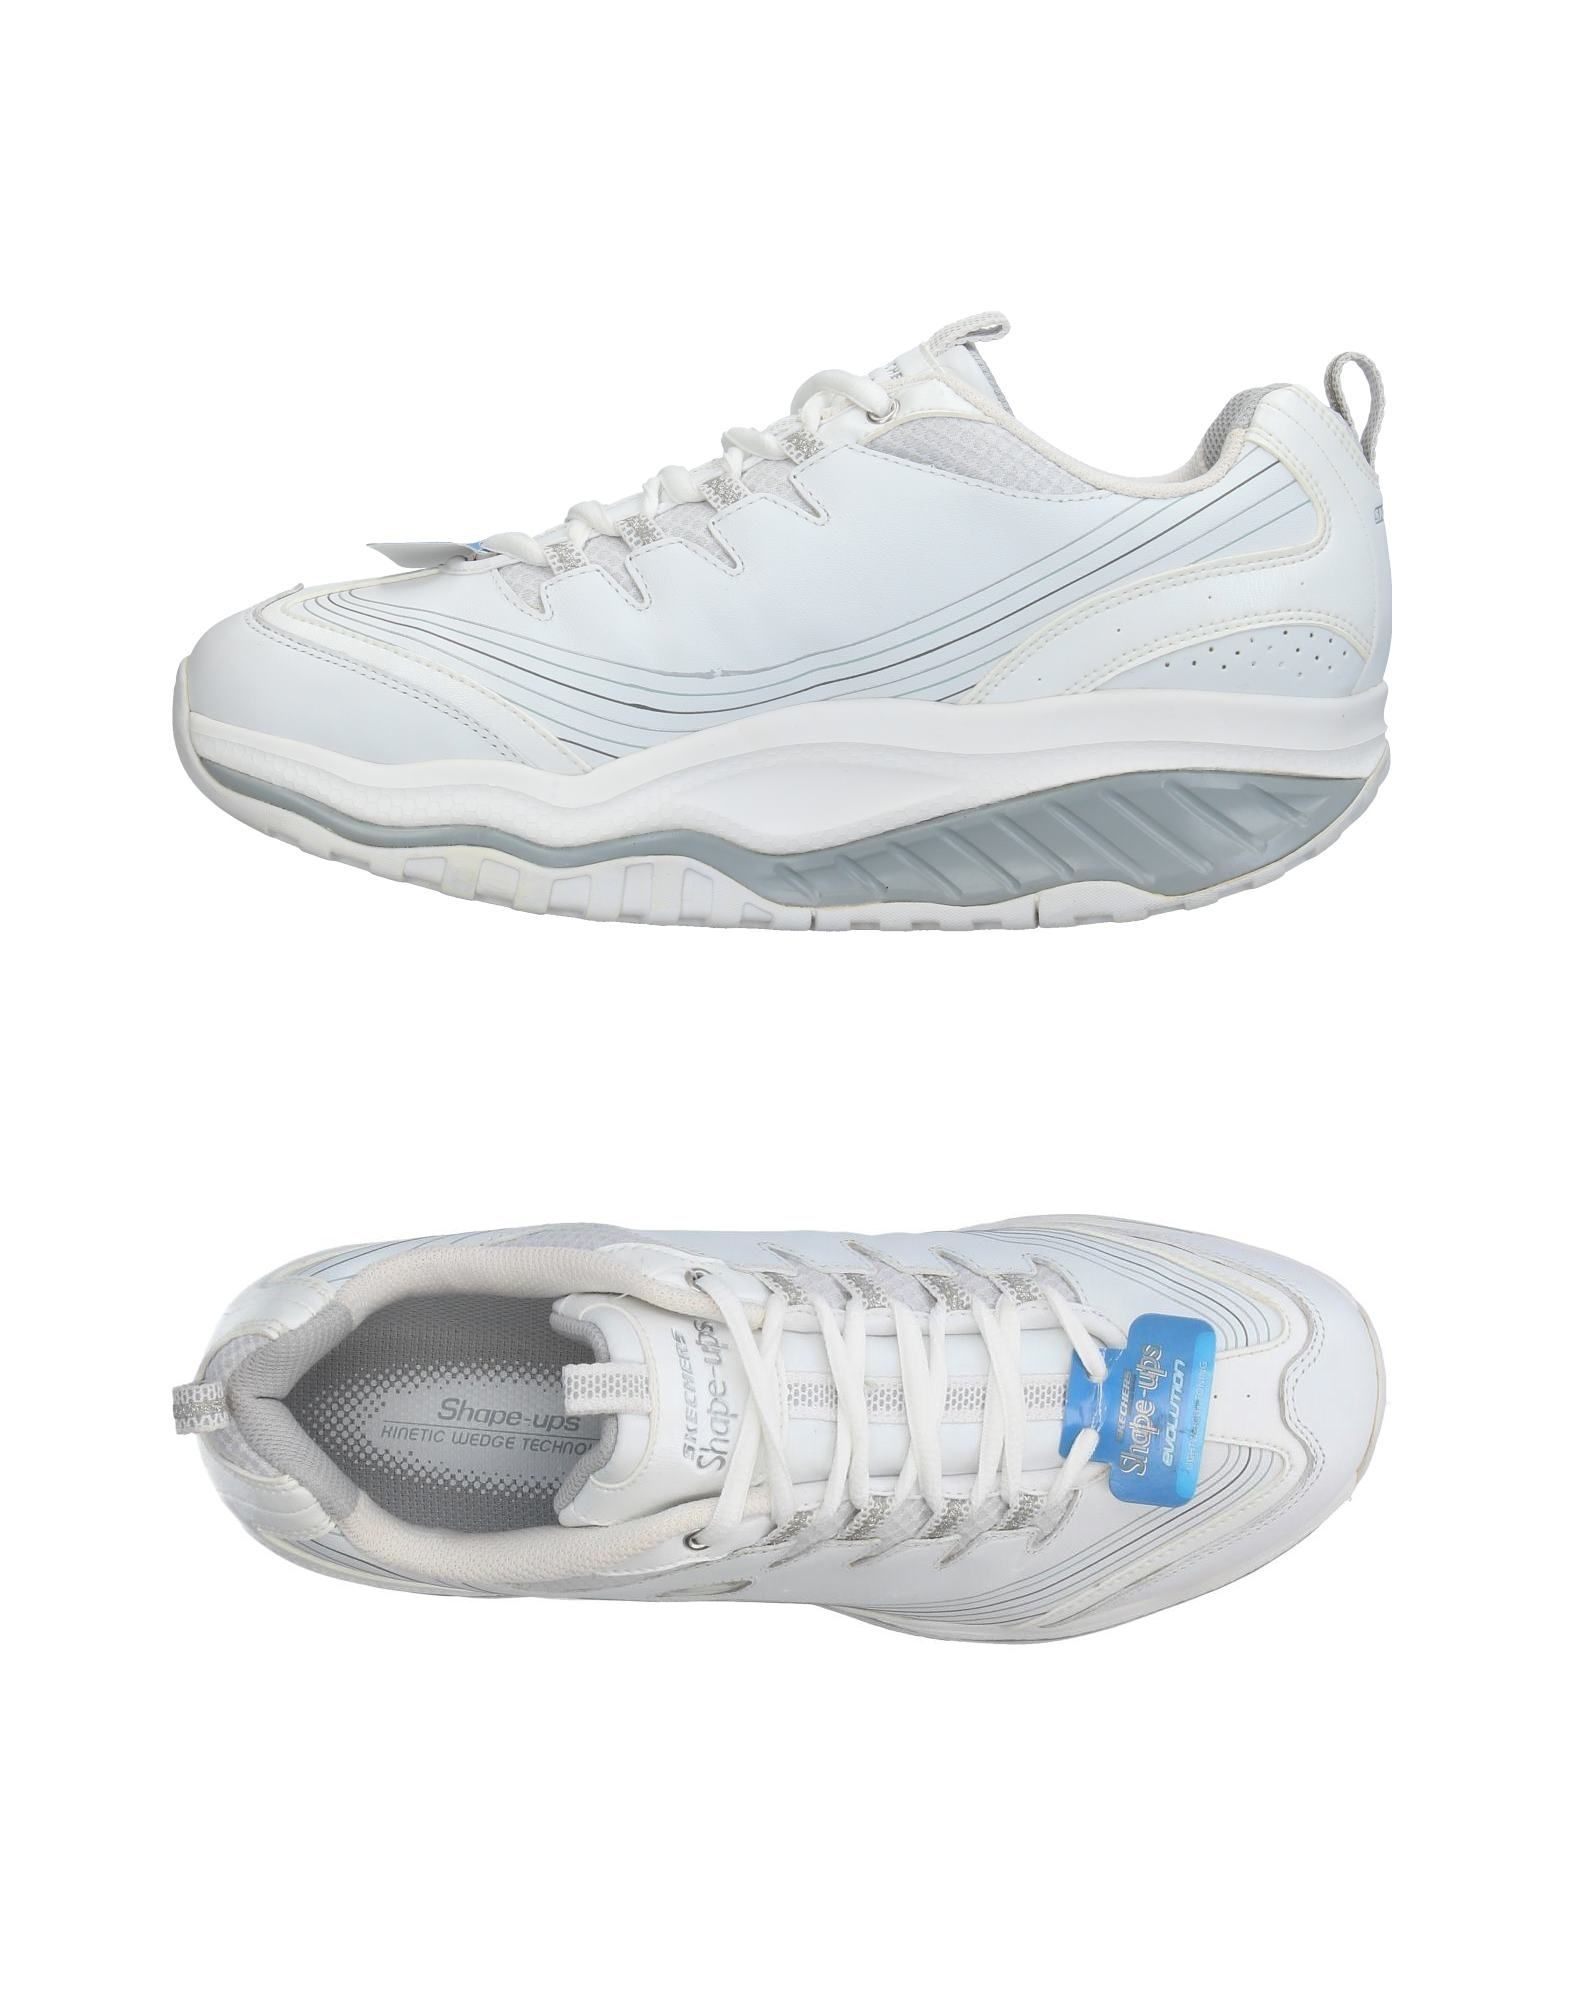 finest selection e4c11 6866a Pantone Universe Footwear Nyc Sneakers   Tennis Basses Femme.